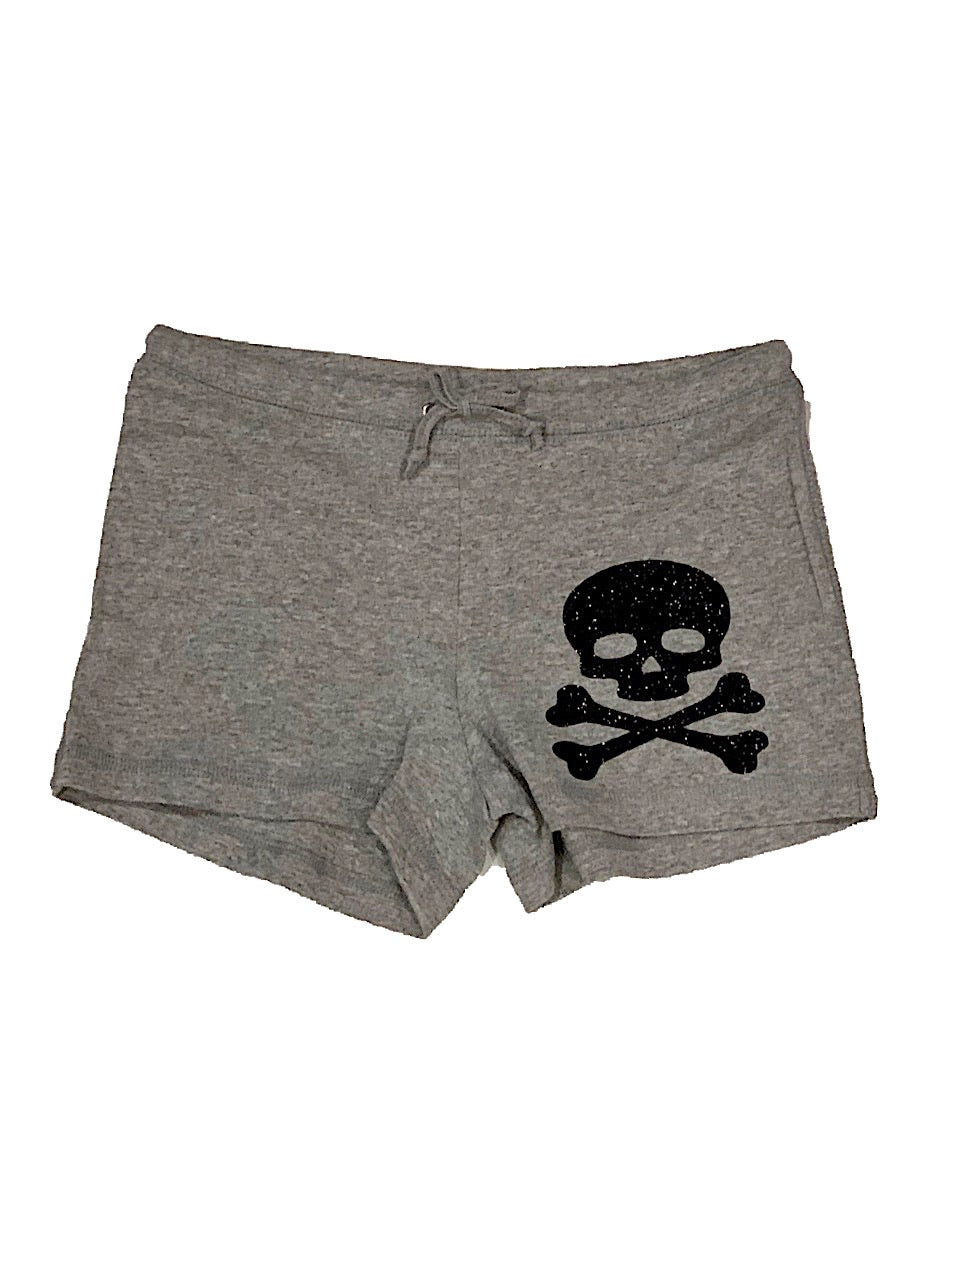 GREY GLITTER SKULL DRAW STRING SHORTS